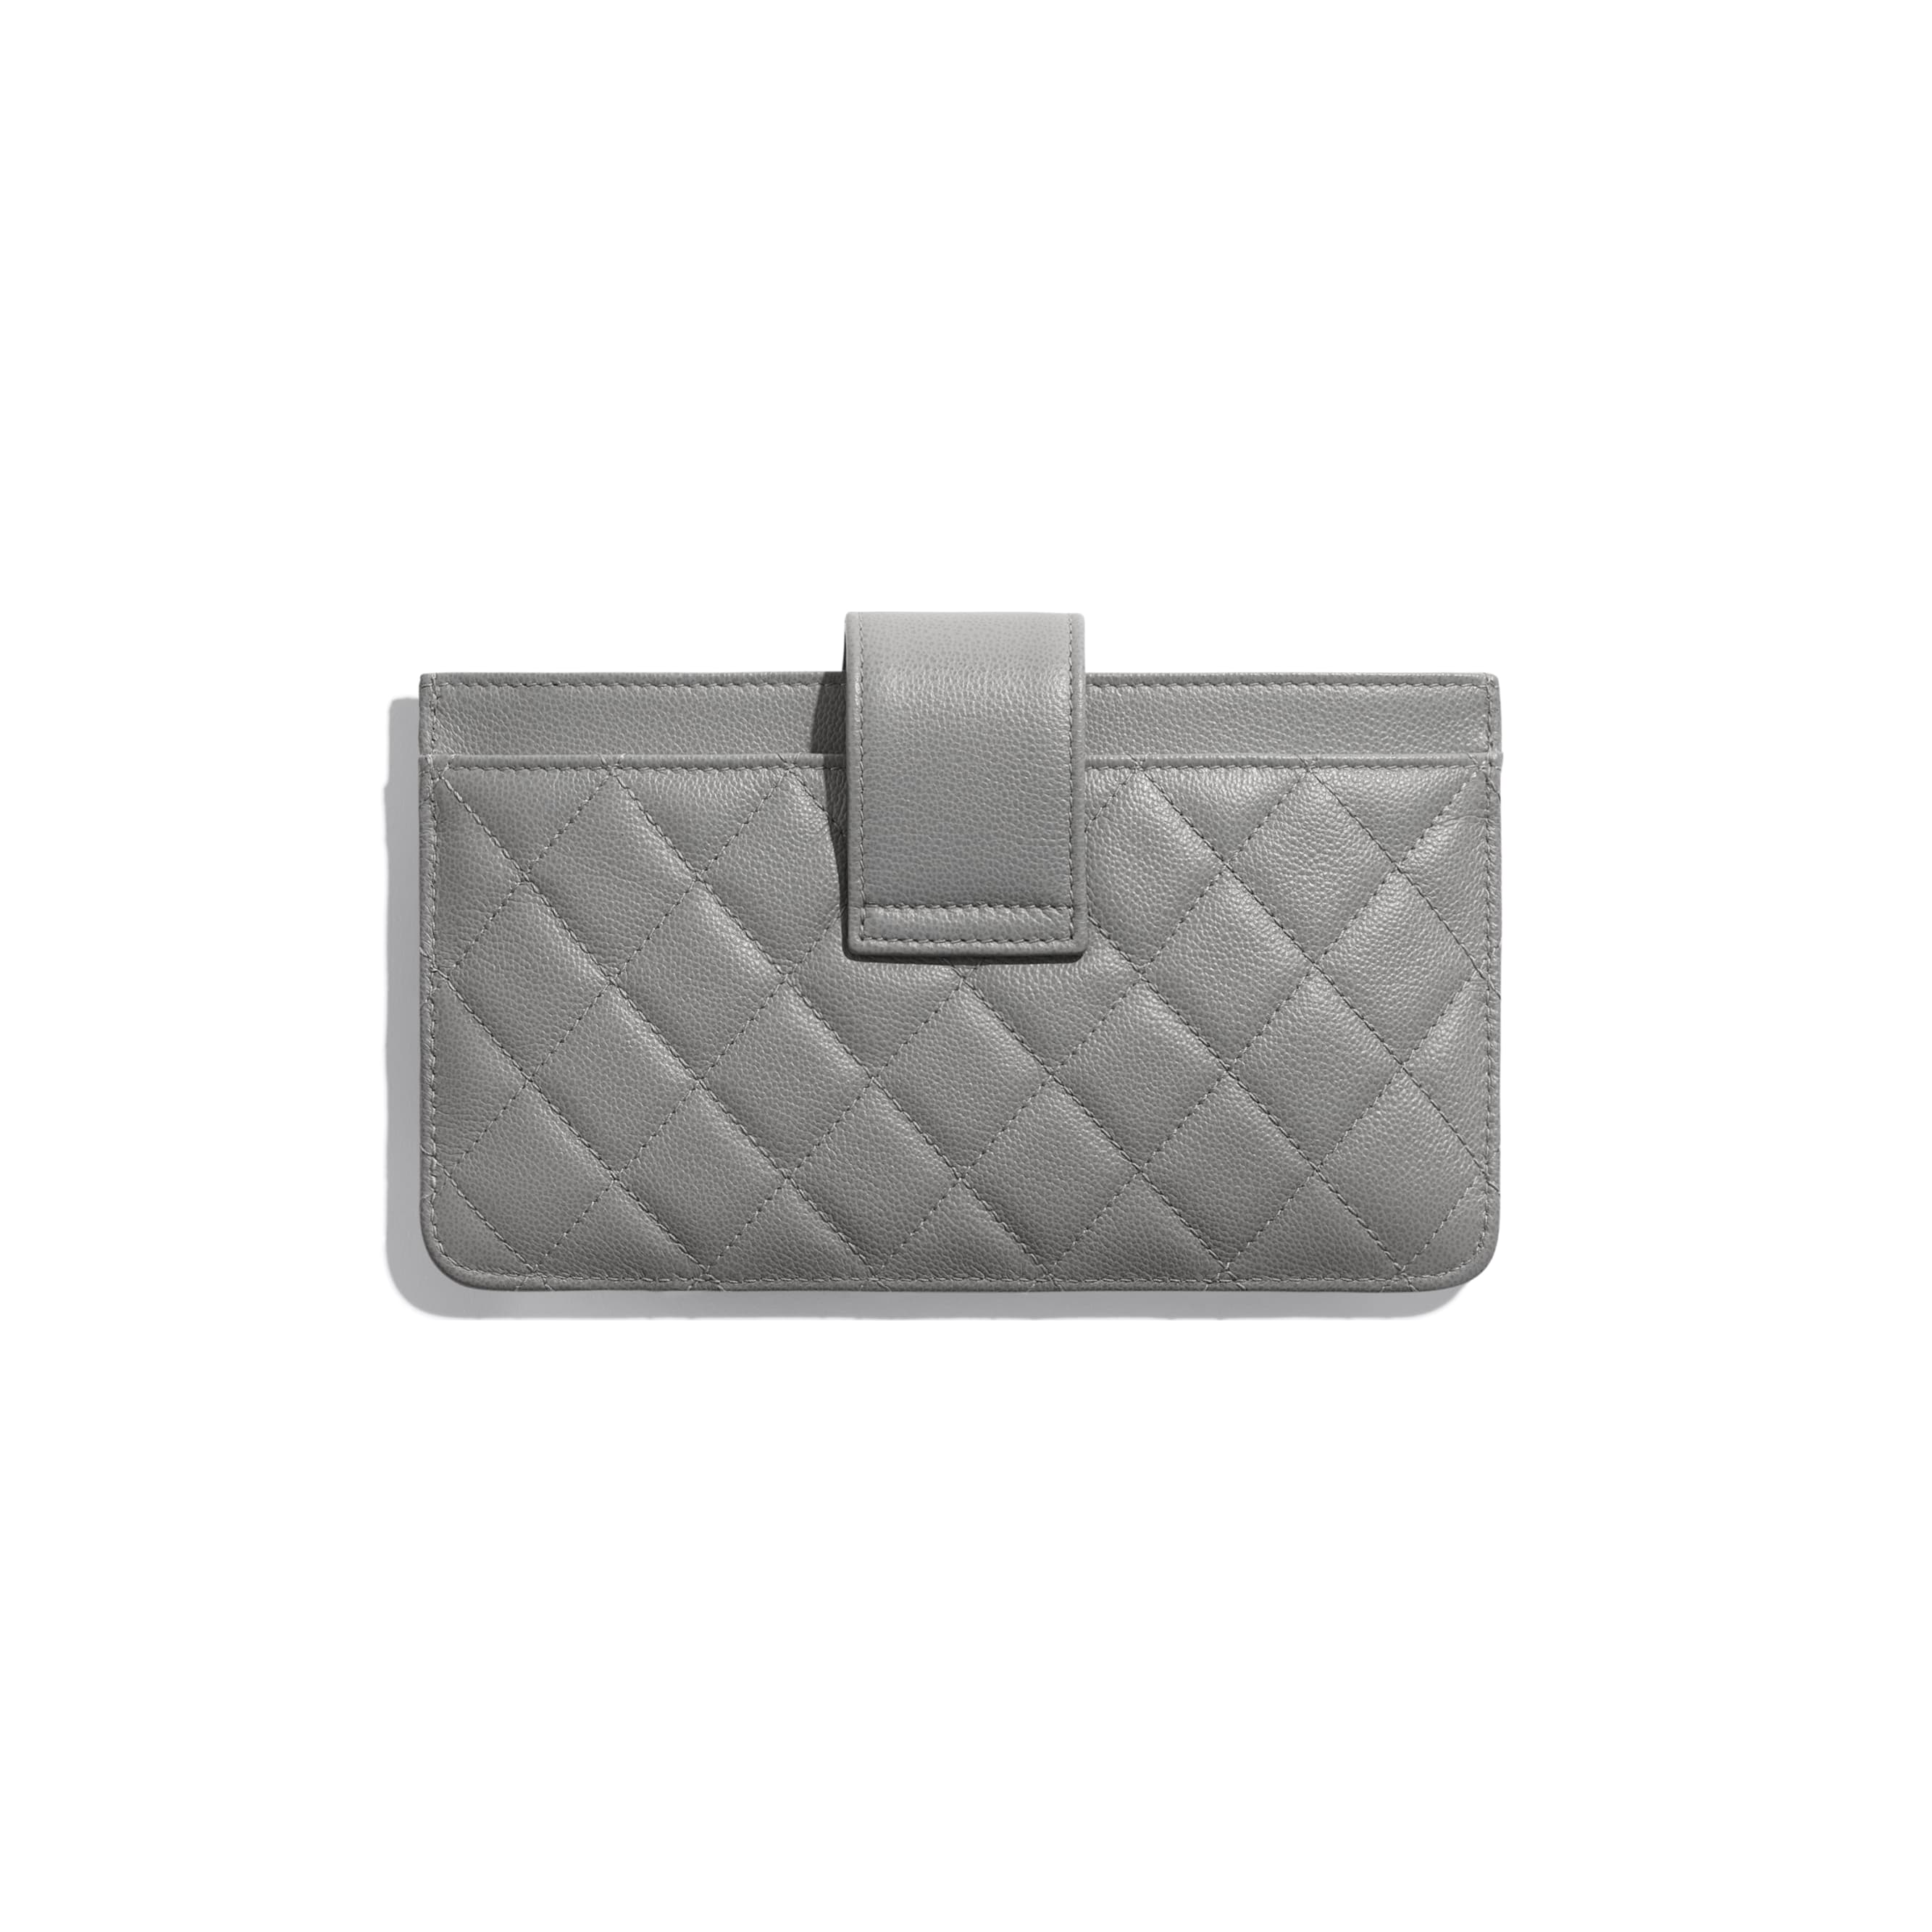 Pouch - Gray - Grained Calfskin & Silver-Tone Metal - CHANEL - Alternative view - see standard sized version